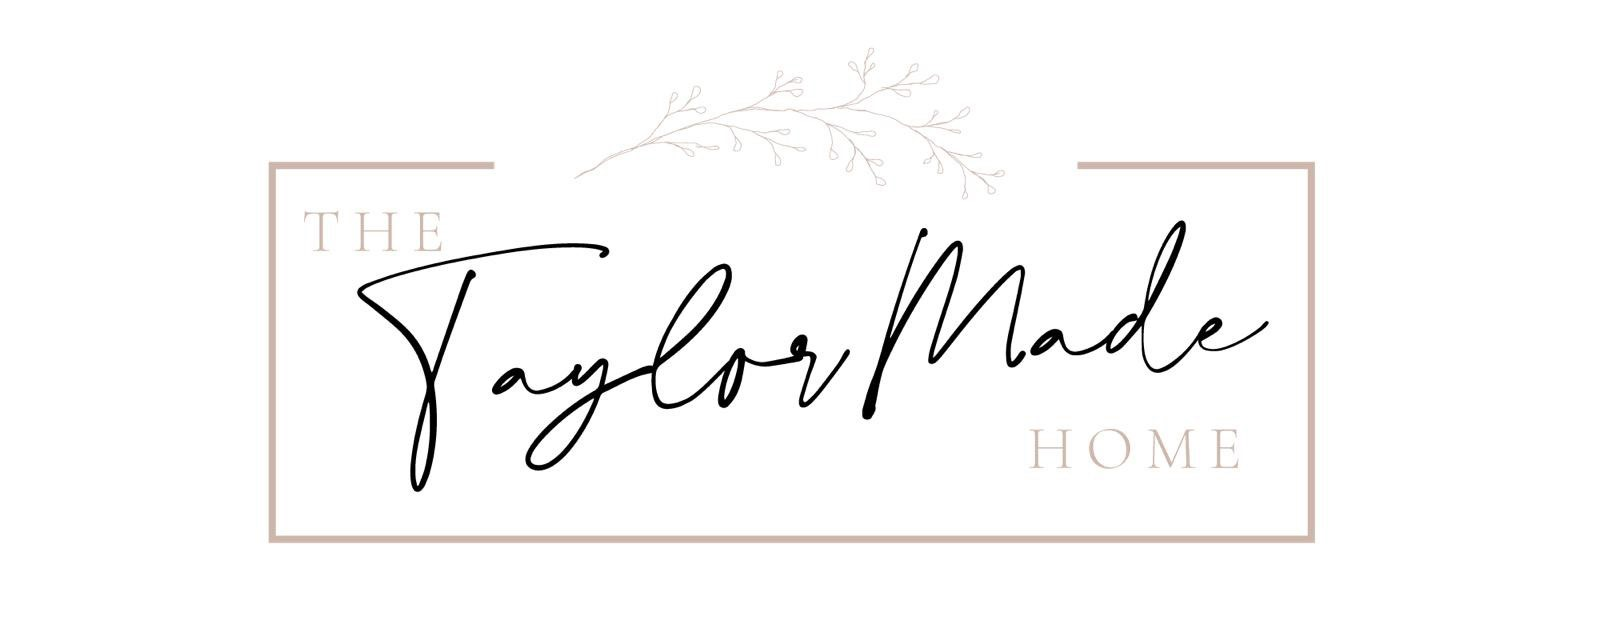 @thetaylormadehome on instagram